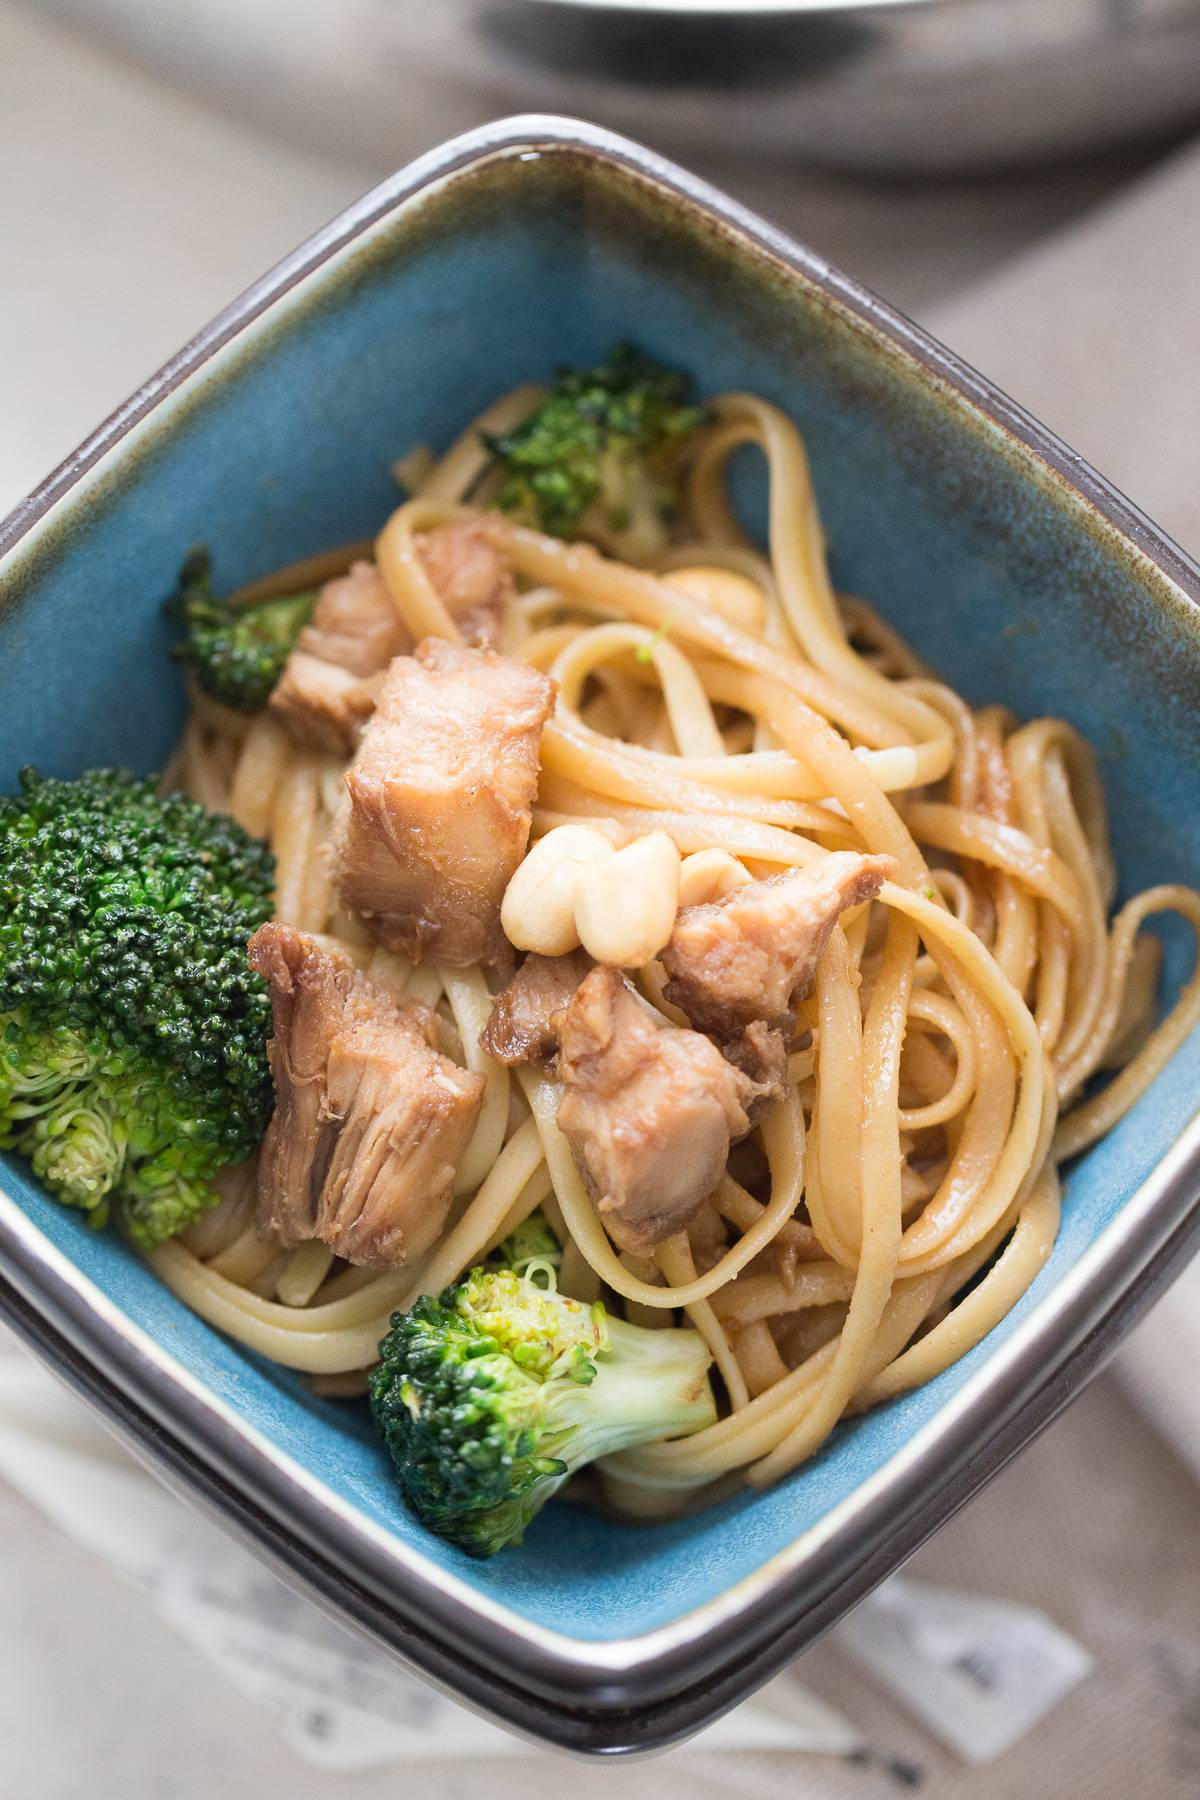 This chicken and broccoli stir fry recipe is an easy weeknight meal that everyone will love!